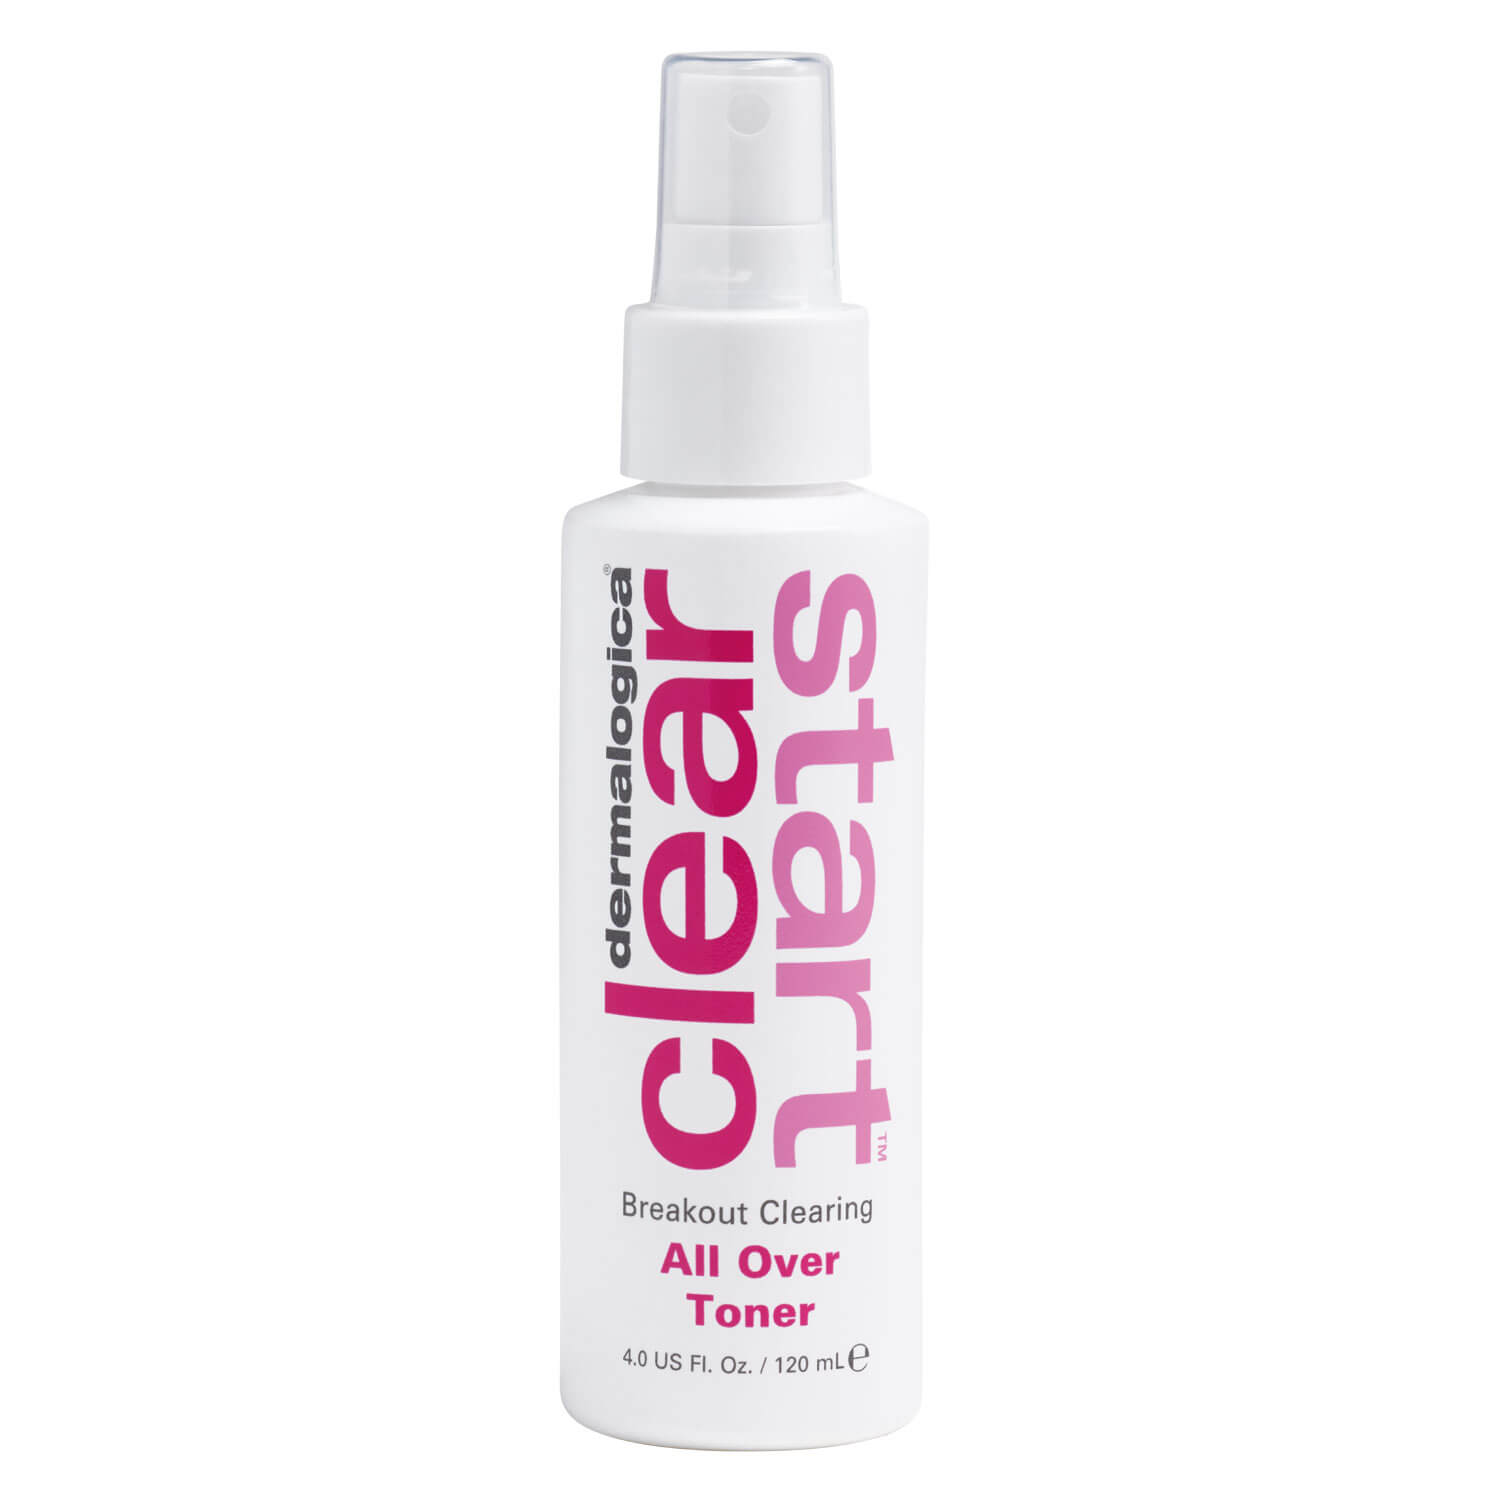 Clear Start - Breakout Clearing All Over Toner